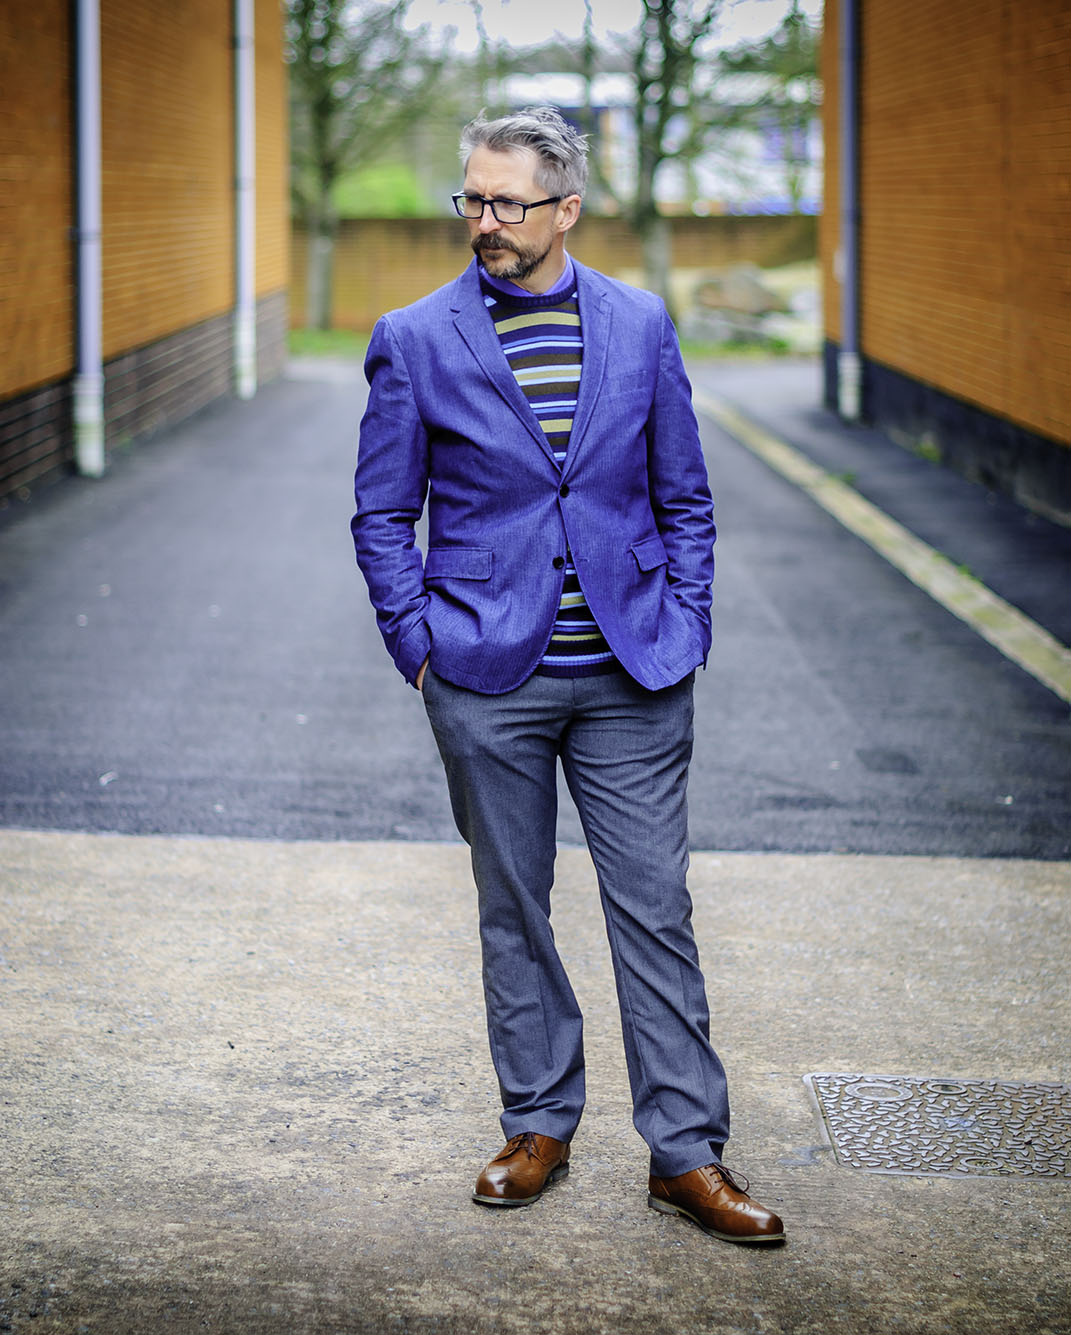 Smart menswear: Blue blazer \ striped sweater \ grey dress trousers \ brown brogues | Silver Londoner, over 40 style